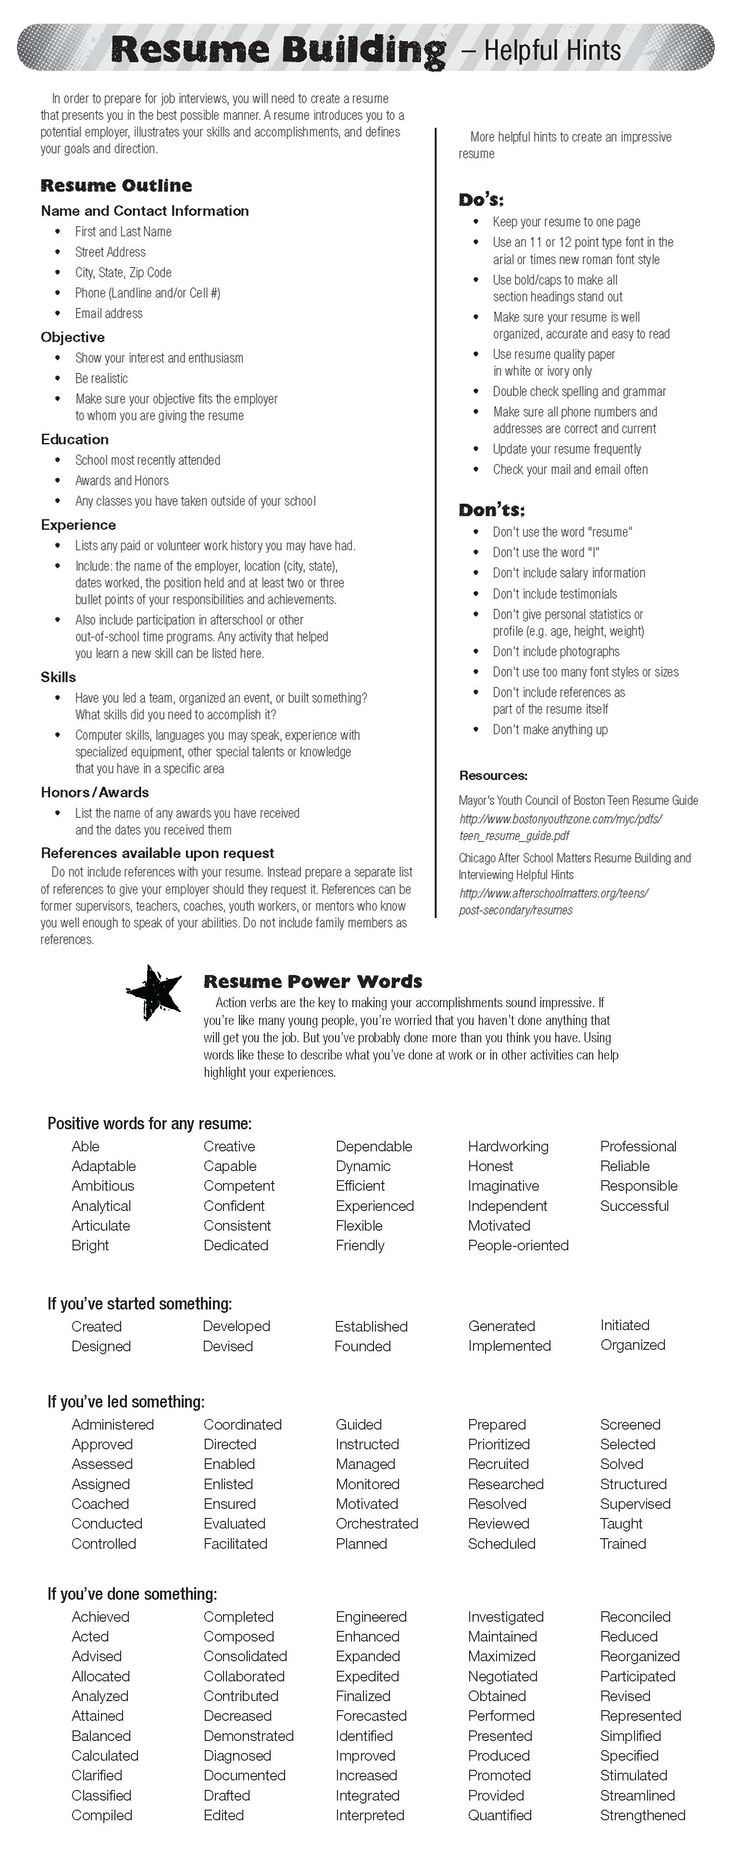 Opposenewapstandardsus  Remarkable  Ideas About Resume On Pinterest  Cv Format Resume Cv And  With Glamorous  Ideas About Resume On Pinterest  Cv Format Resume Cv And Resume Templates With Easy On The Eye Accounting Internship Resume Also Verbs To Use In Resume In Addition Hotel Resume And What Do Employers Look For In A Resume As Well As Resume Present Tense Additionally Nanny Job Description Resume From Pinterestcom With Opposenewapstandardsus  Glamorous  Ideas About Resume On Pinterest  Cv Format Resume Cv And  With Easy On The Eye  Ideas About Resume On Pinterest  Cv Format Resume Cv And Resume Templates And Remarkable Accounting Internship Resume Also Verbs To Use In Resume In Addition Hotel Resume From Pinterestcom